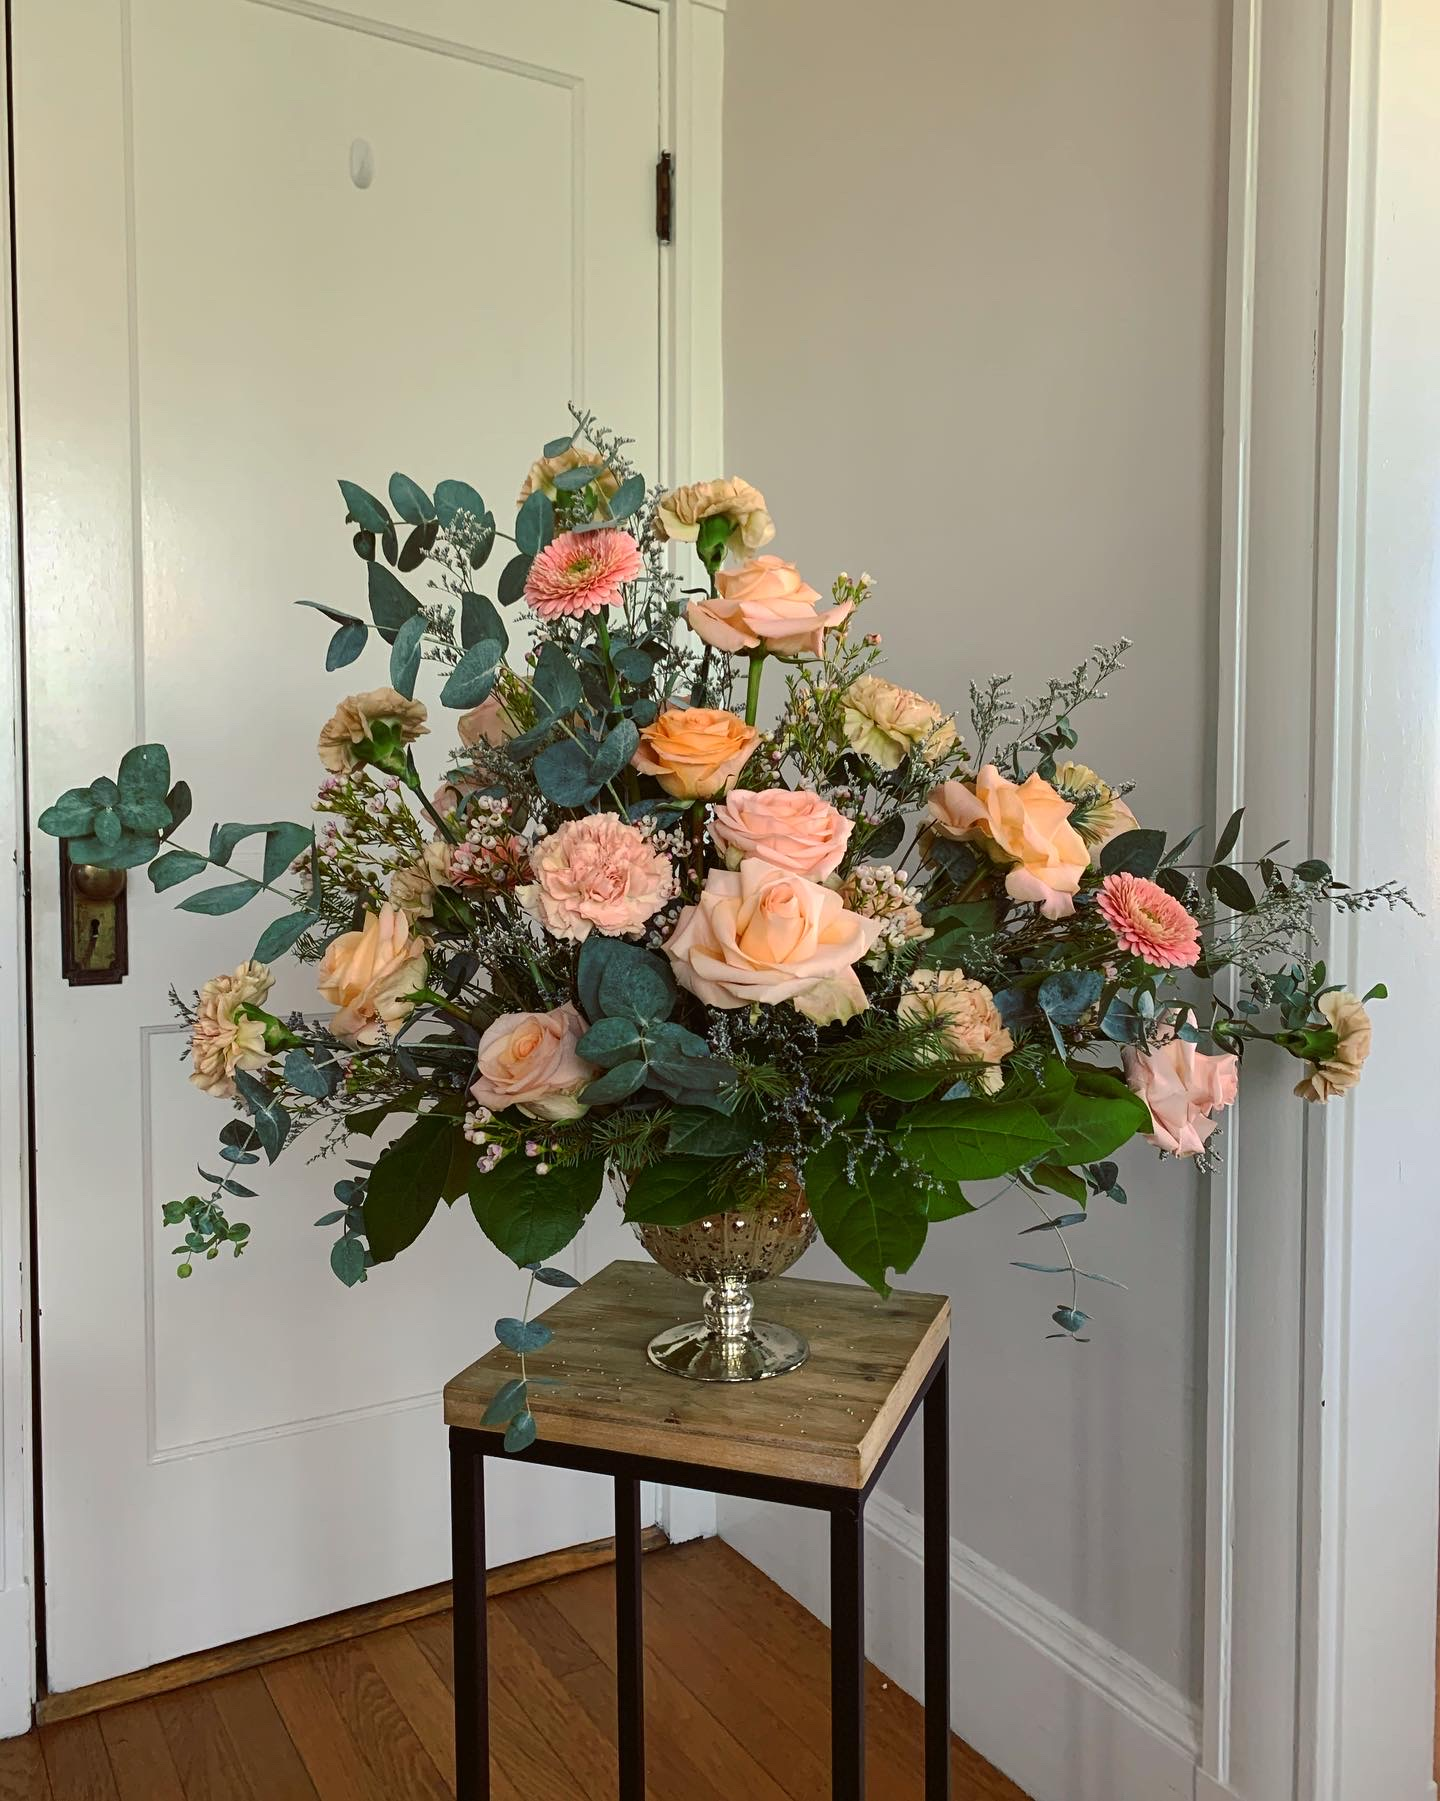 Standout piece with various blooms